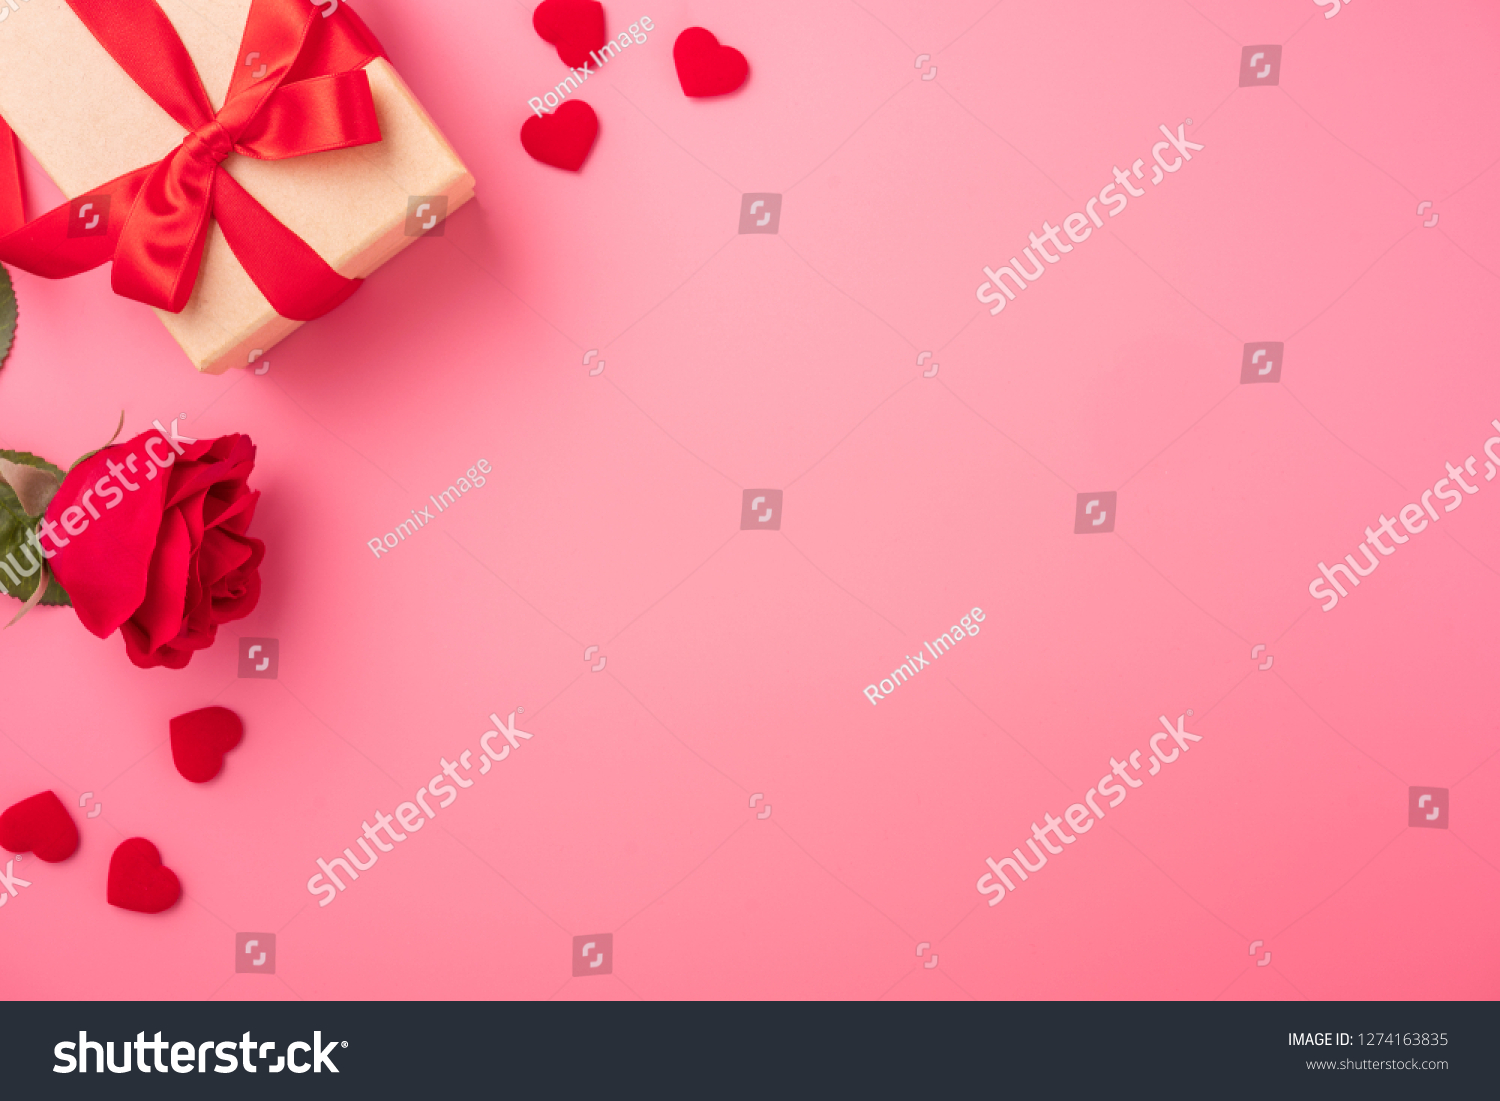 Kraft Gift box with beautiful red ribbon and rose, concept of Valentine's, anniversary, mother's day and birthday greeting, copyspace, topview. #1274163835